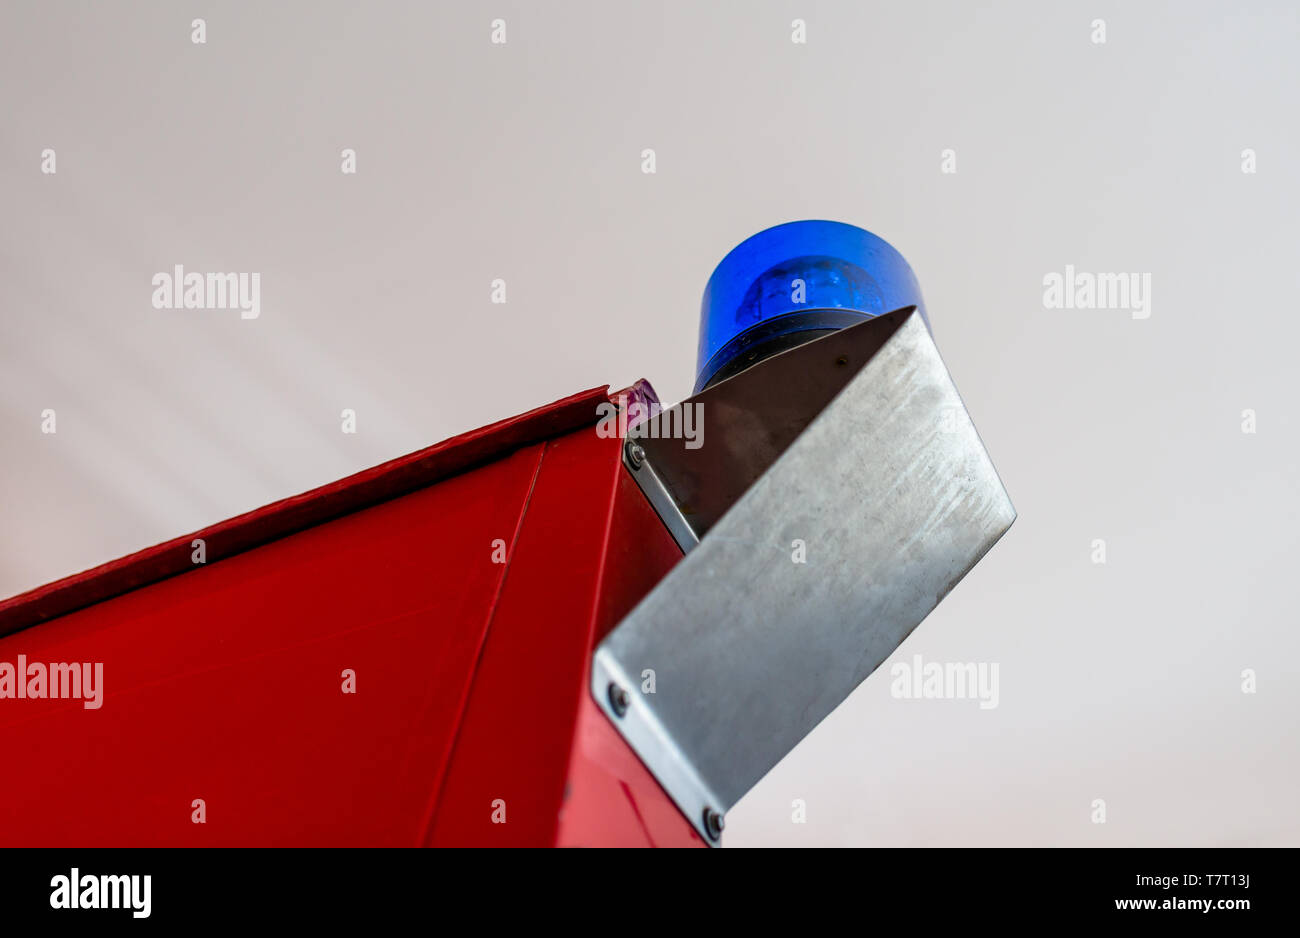 Blue warning signal placed on the back of the fire truck. Stock Photo